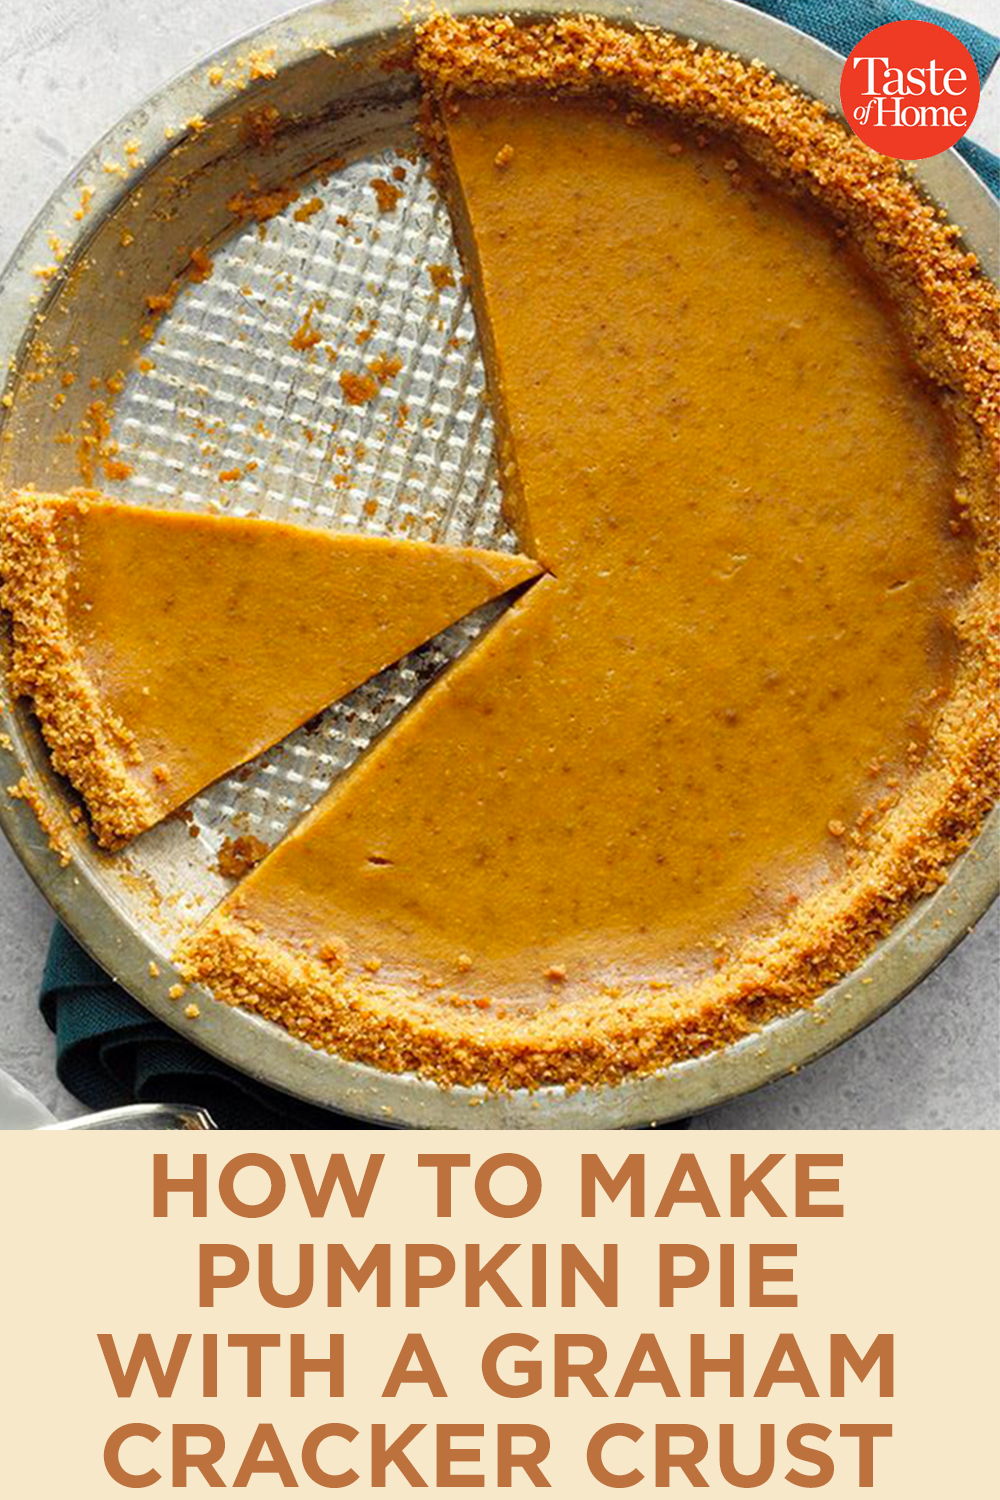 This Homemade Pumpkin Pie Has A Wait For It Graham Cracker Crust In 2020 Homemade Graham Crackers Pumpkin Pie Recipes Homemade Pumpkin Pie